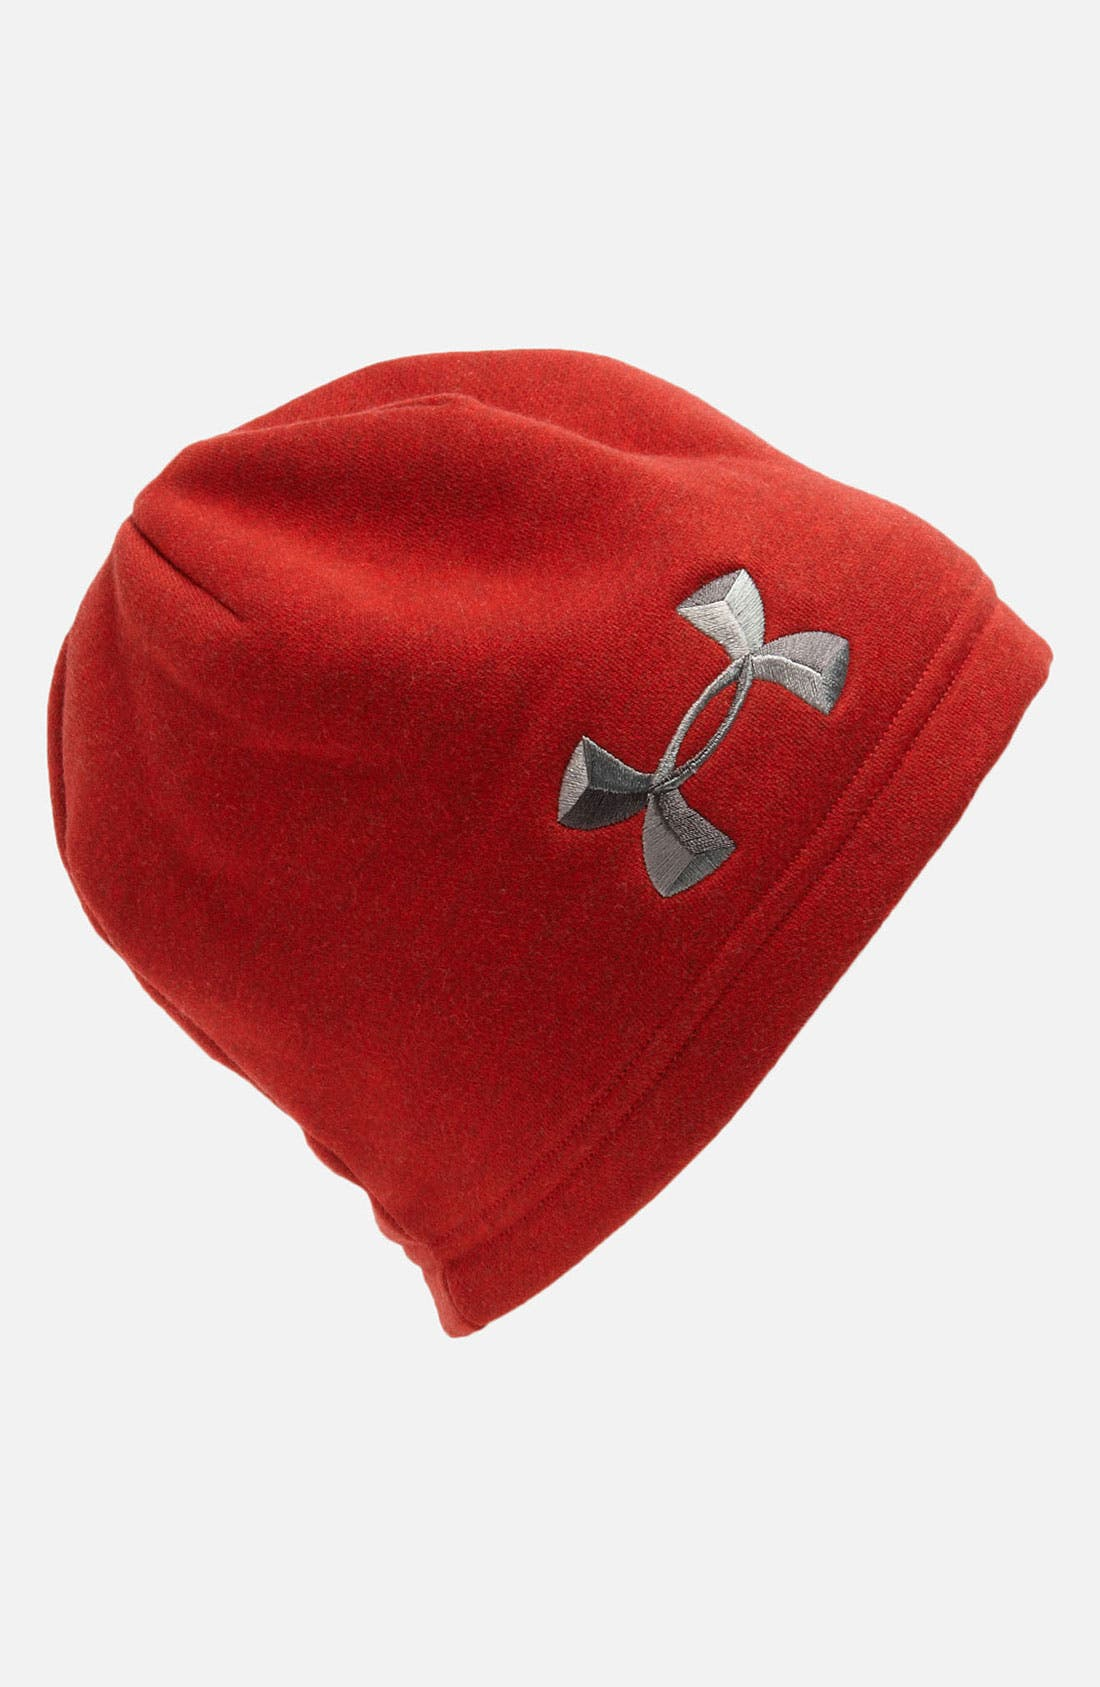 Alternate Image 1 Selected - Under Armour 'Storm' Beanie